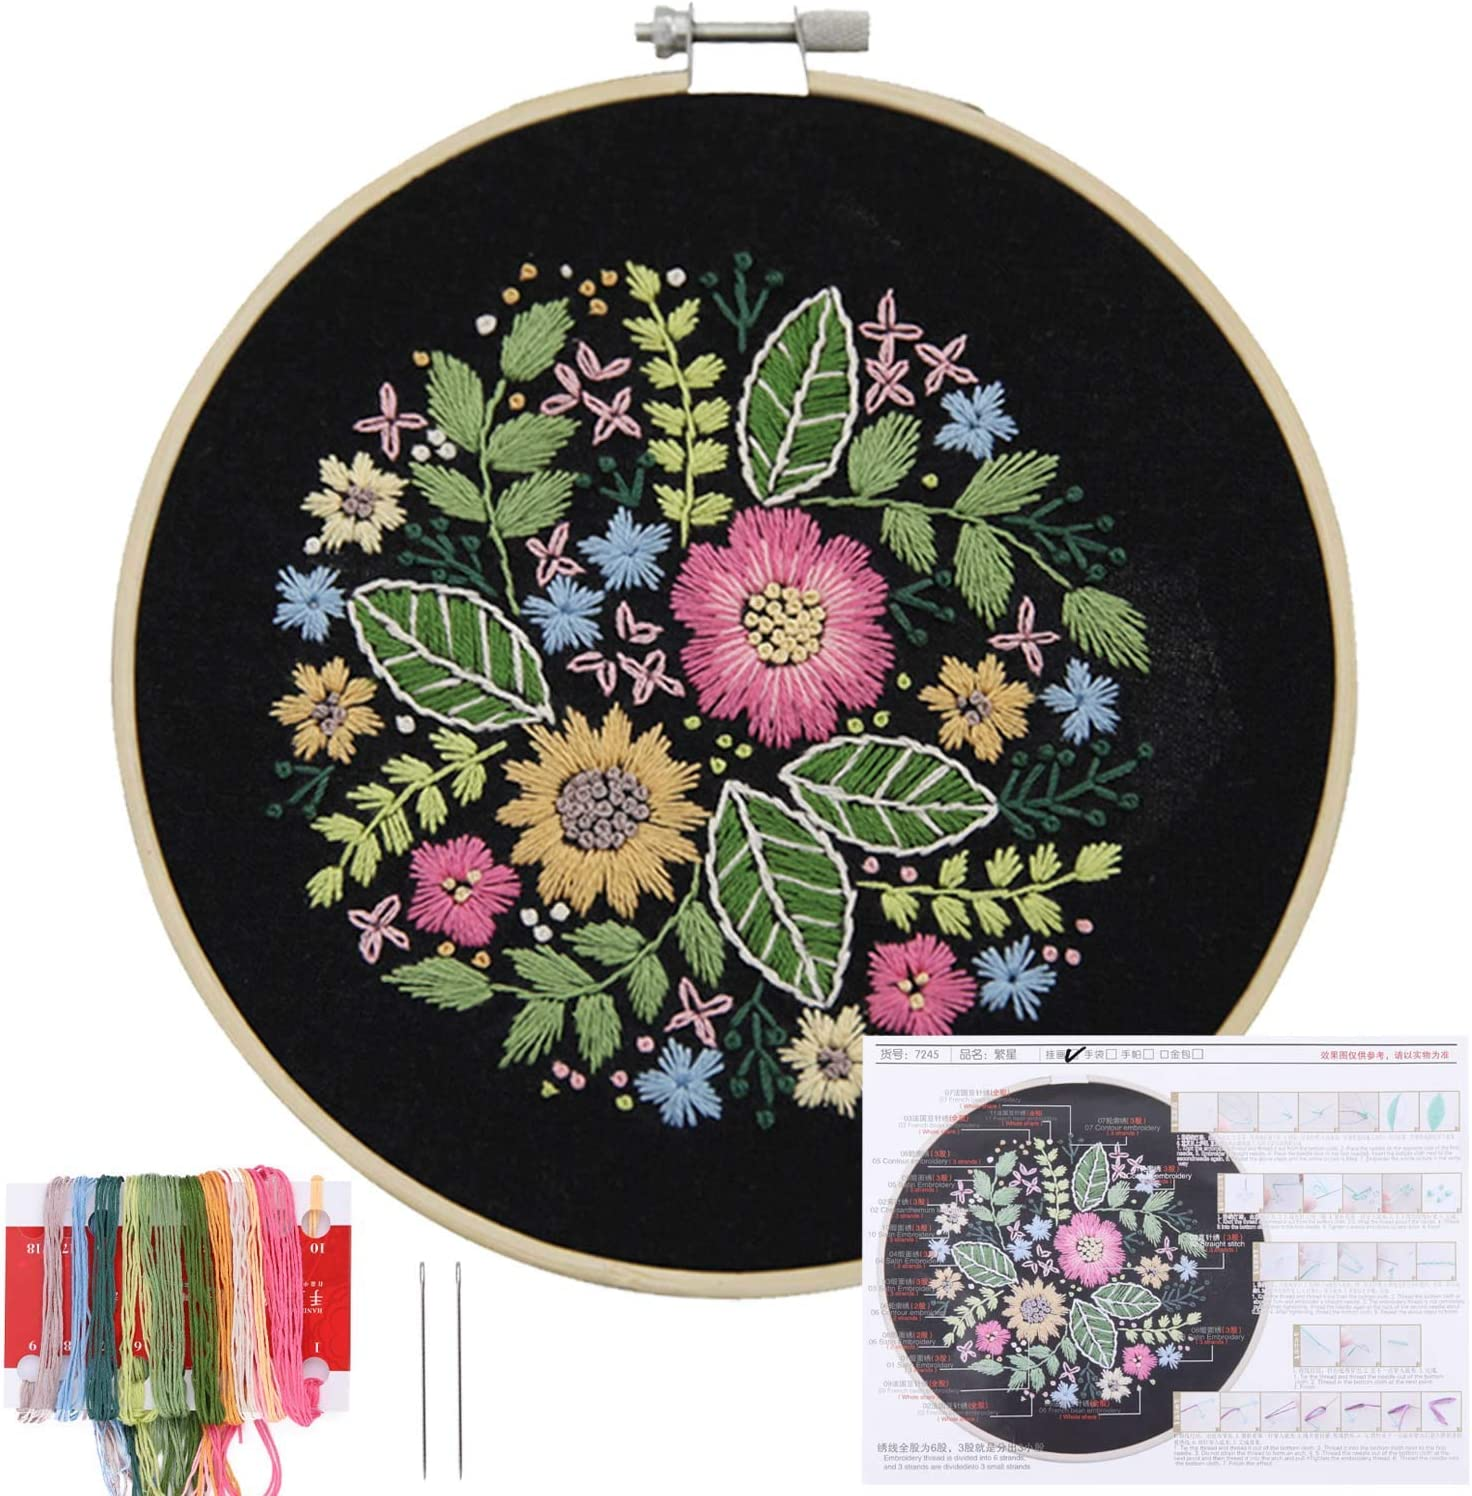 Cross Stitch Needlepoint Craft Kits Color Threads 3-Set Embroidery Kit for Beginners Floral Patterns Embroidery Starter Kit with Patterns Embroidery Cloth and Needles Includes Embroidery Hoops